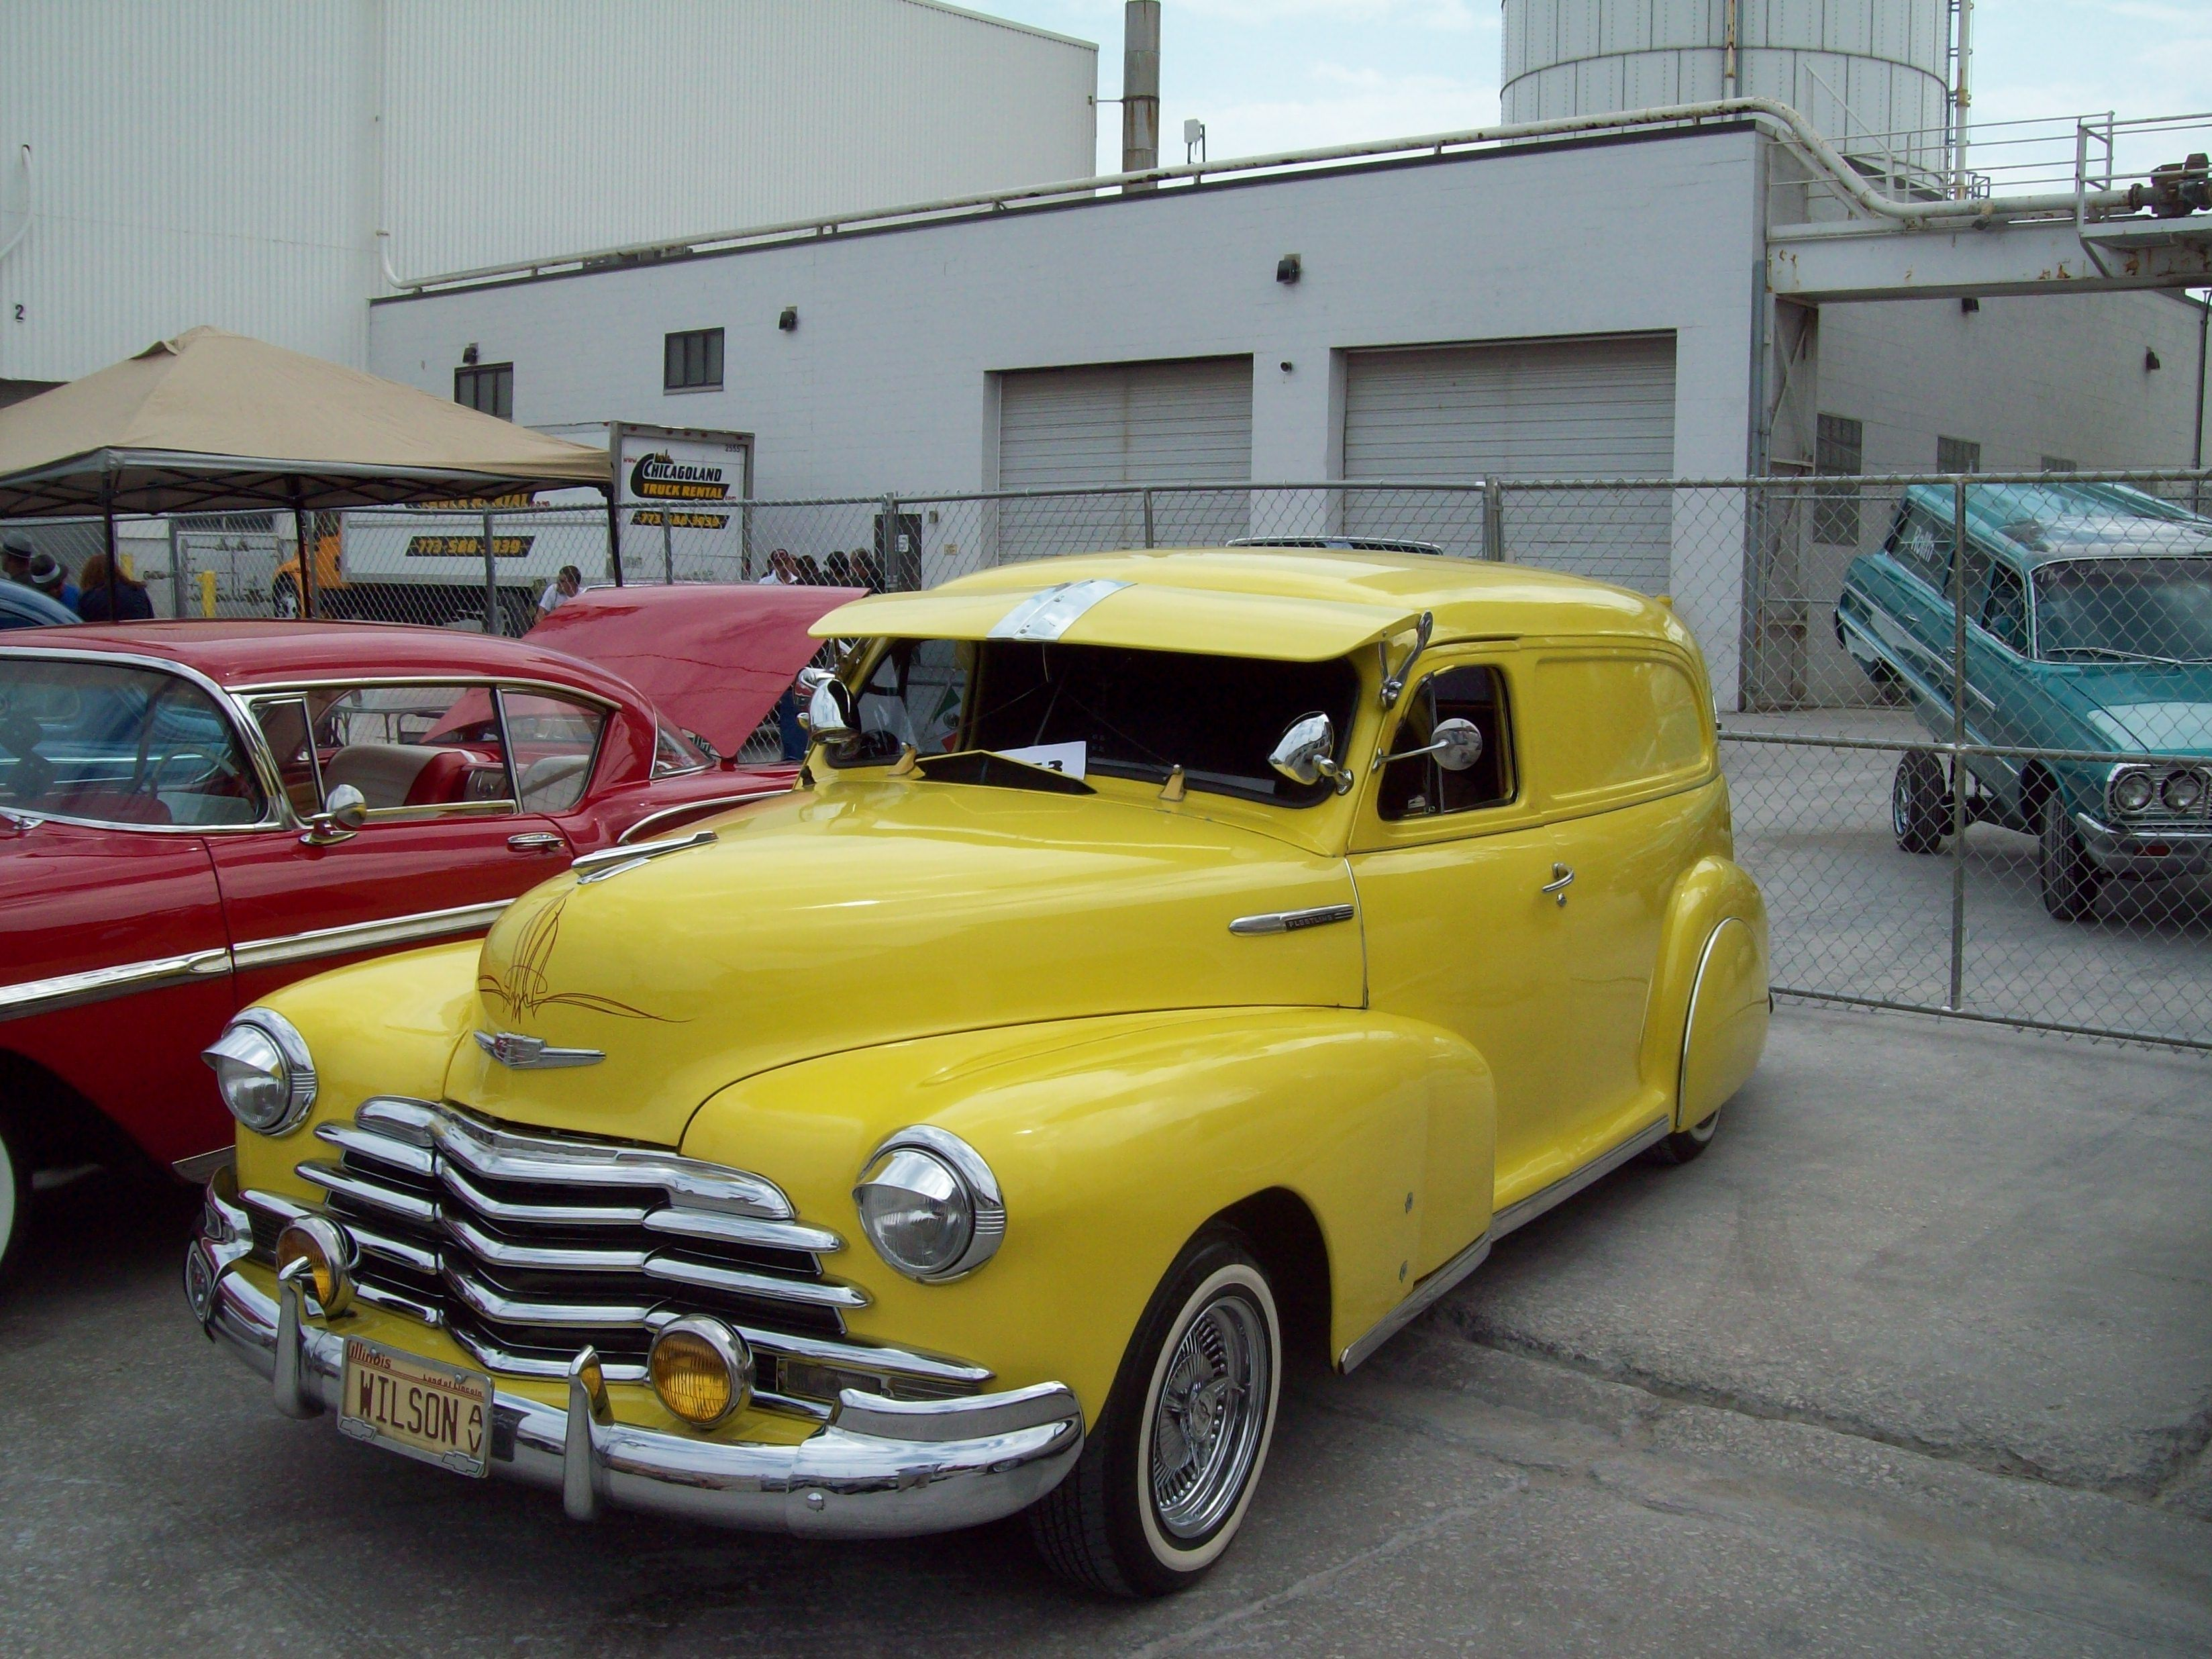 Low Rider fest 2014 Chicago | Vintage Cars | Pinterest | Low rider ...